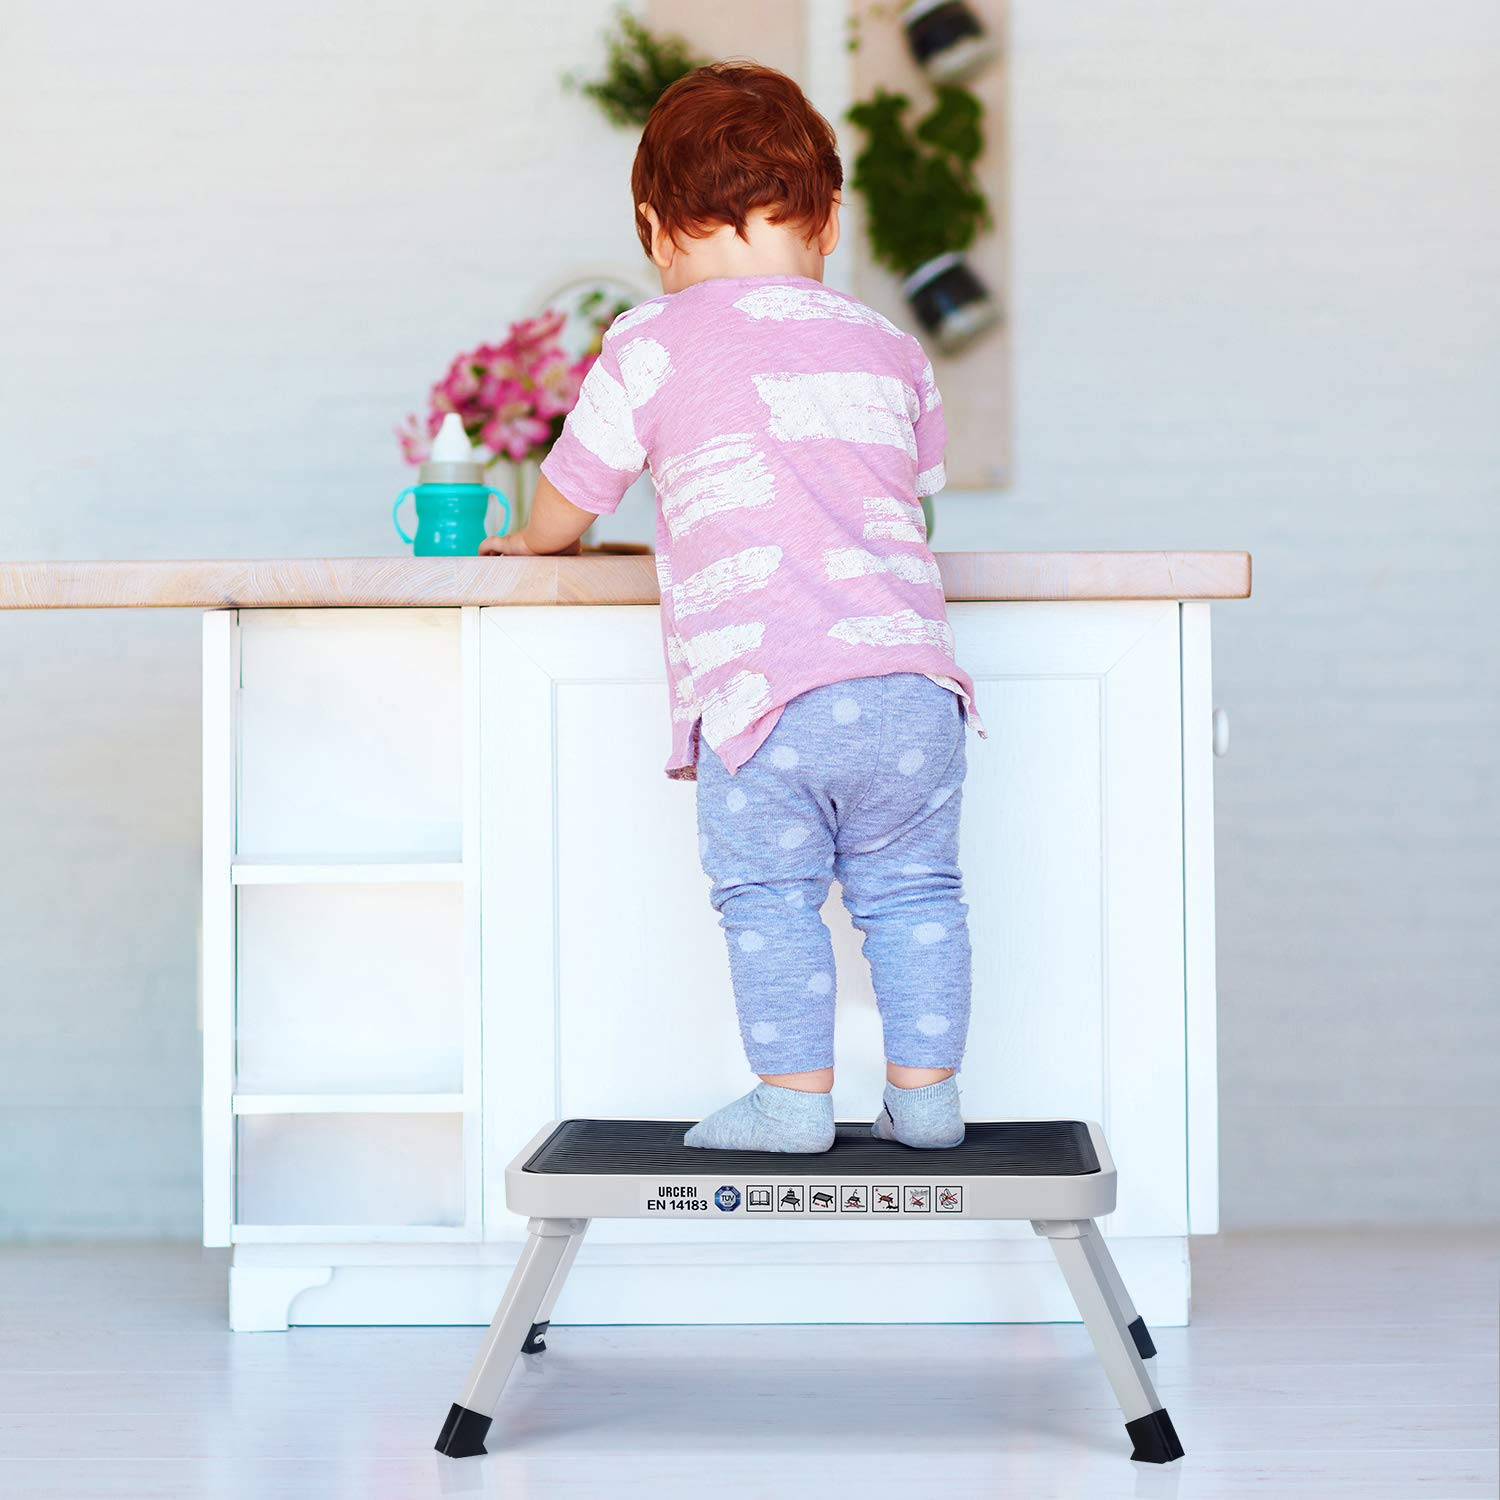 URCERI Folding Steel Step Stool with Non-Skid Plastic Platform Portable Lightweight One Step Ladder with Built-in Handle and Max Load 330 lbs. for Adults Seniors Kids to use at Home Bathroom Kitchen by URCERI (Image #4)